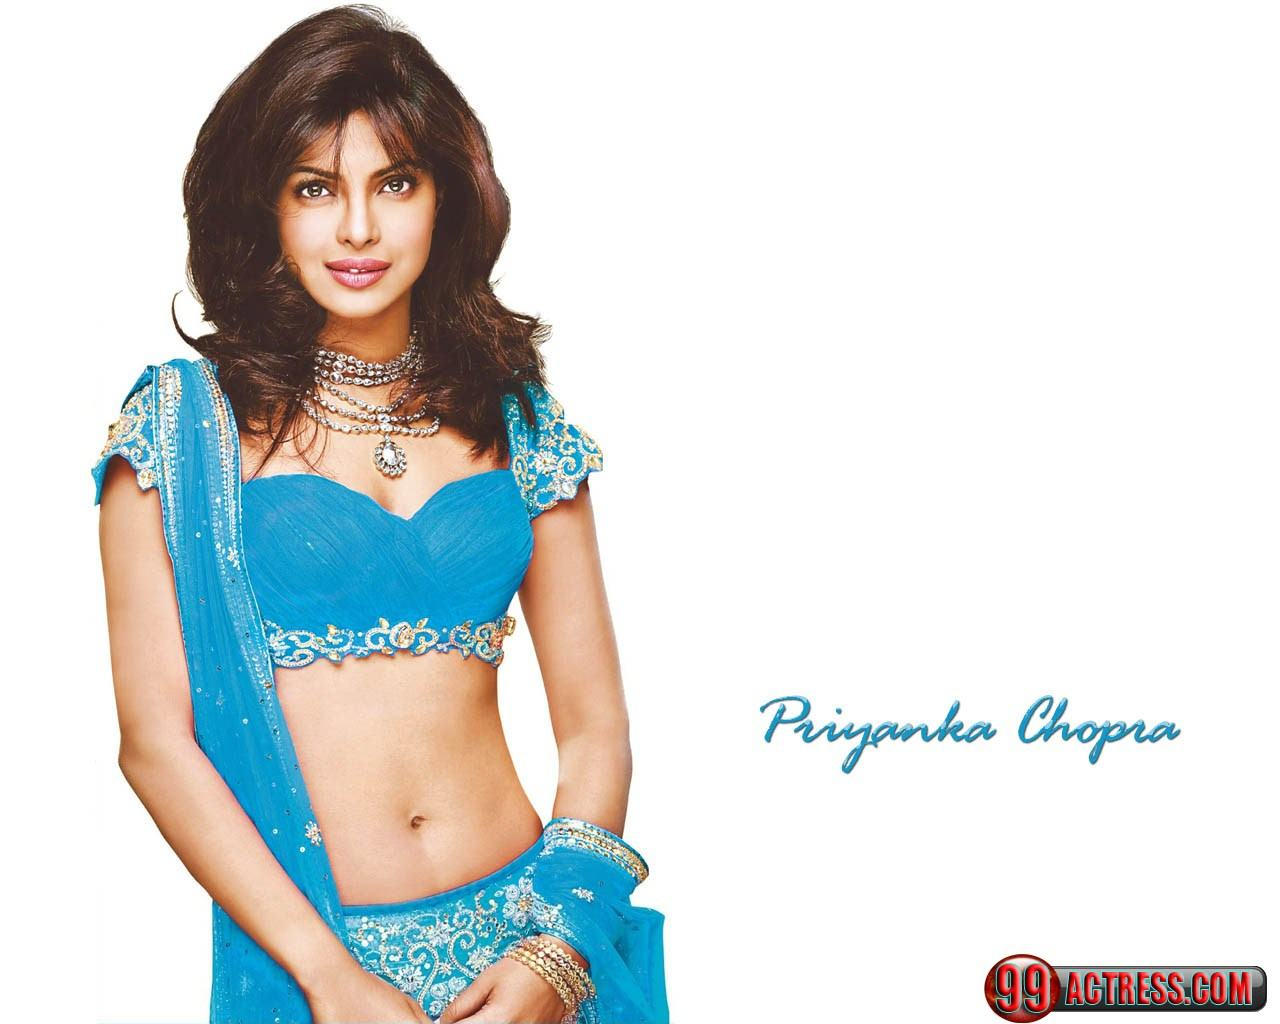 Priyanka Chopra Background